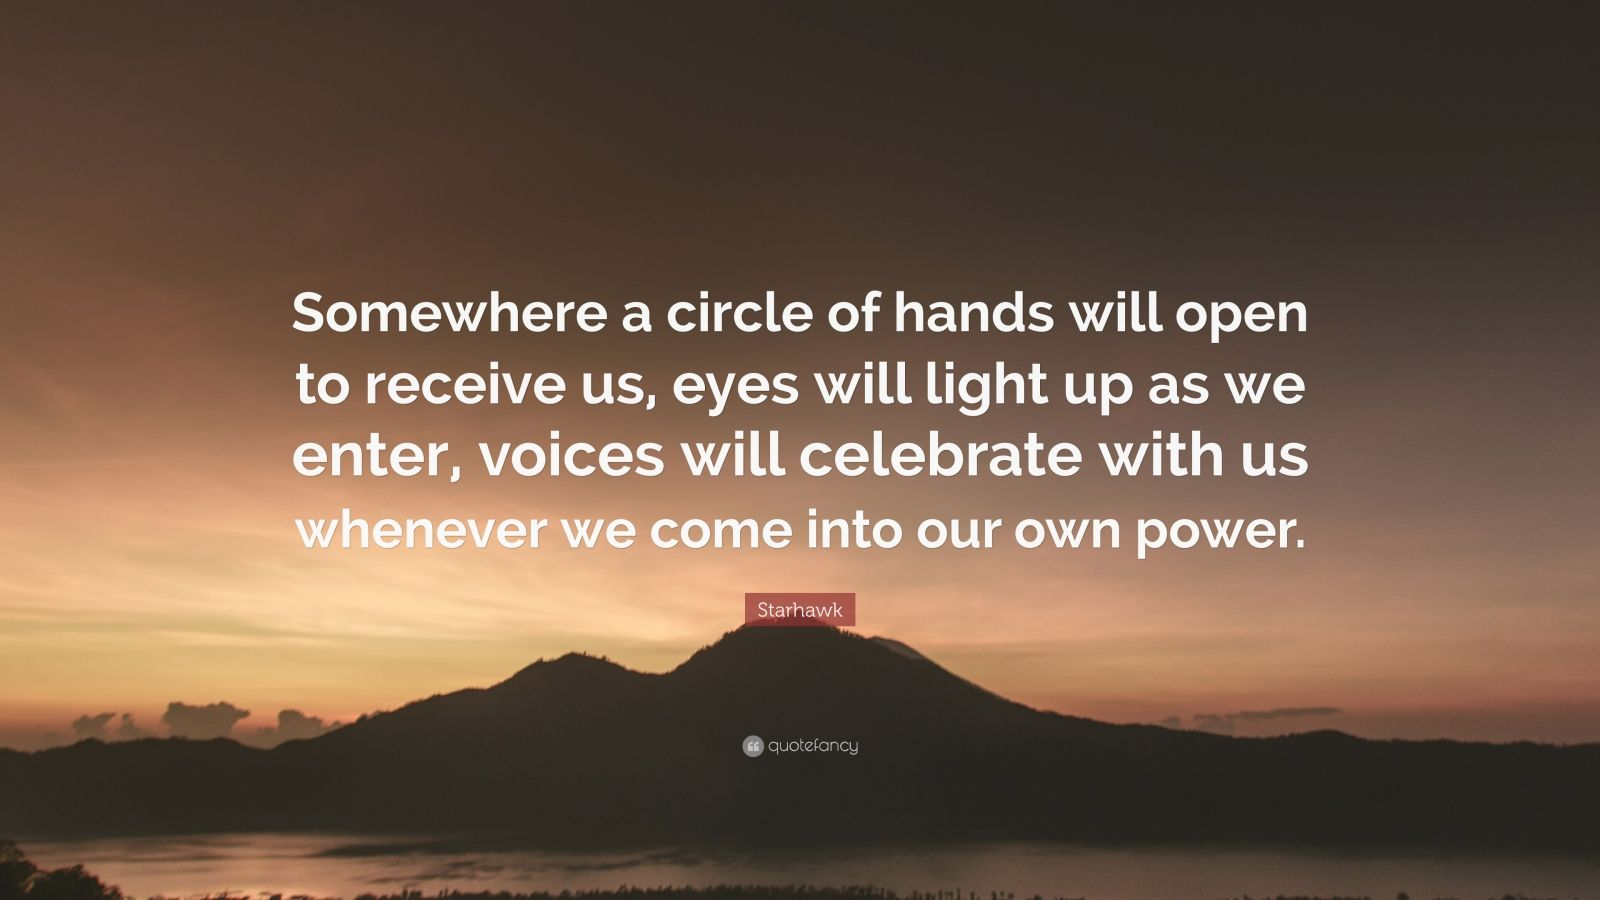 """Starhawk Quote: """"Somewhere a circle of hands will open to receive us, eyes will light up as we enter, voices will celebrate with us whenever we come into our own power."""""""